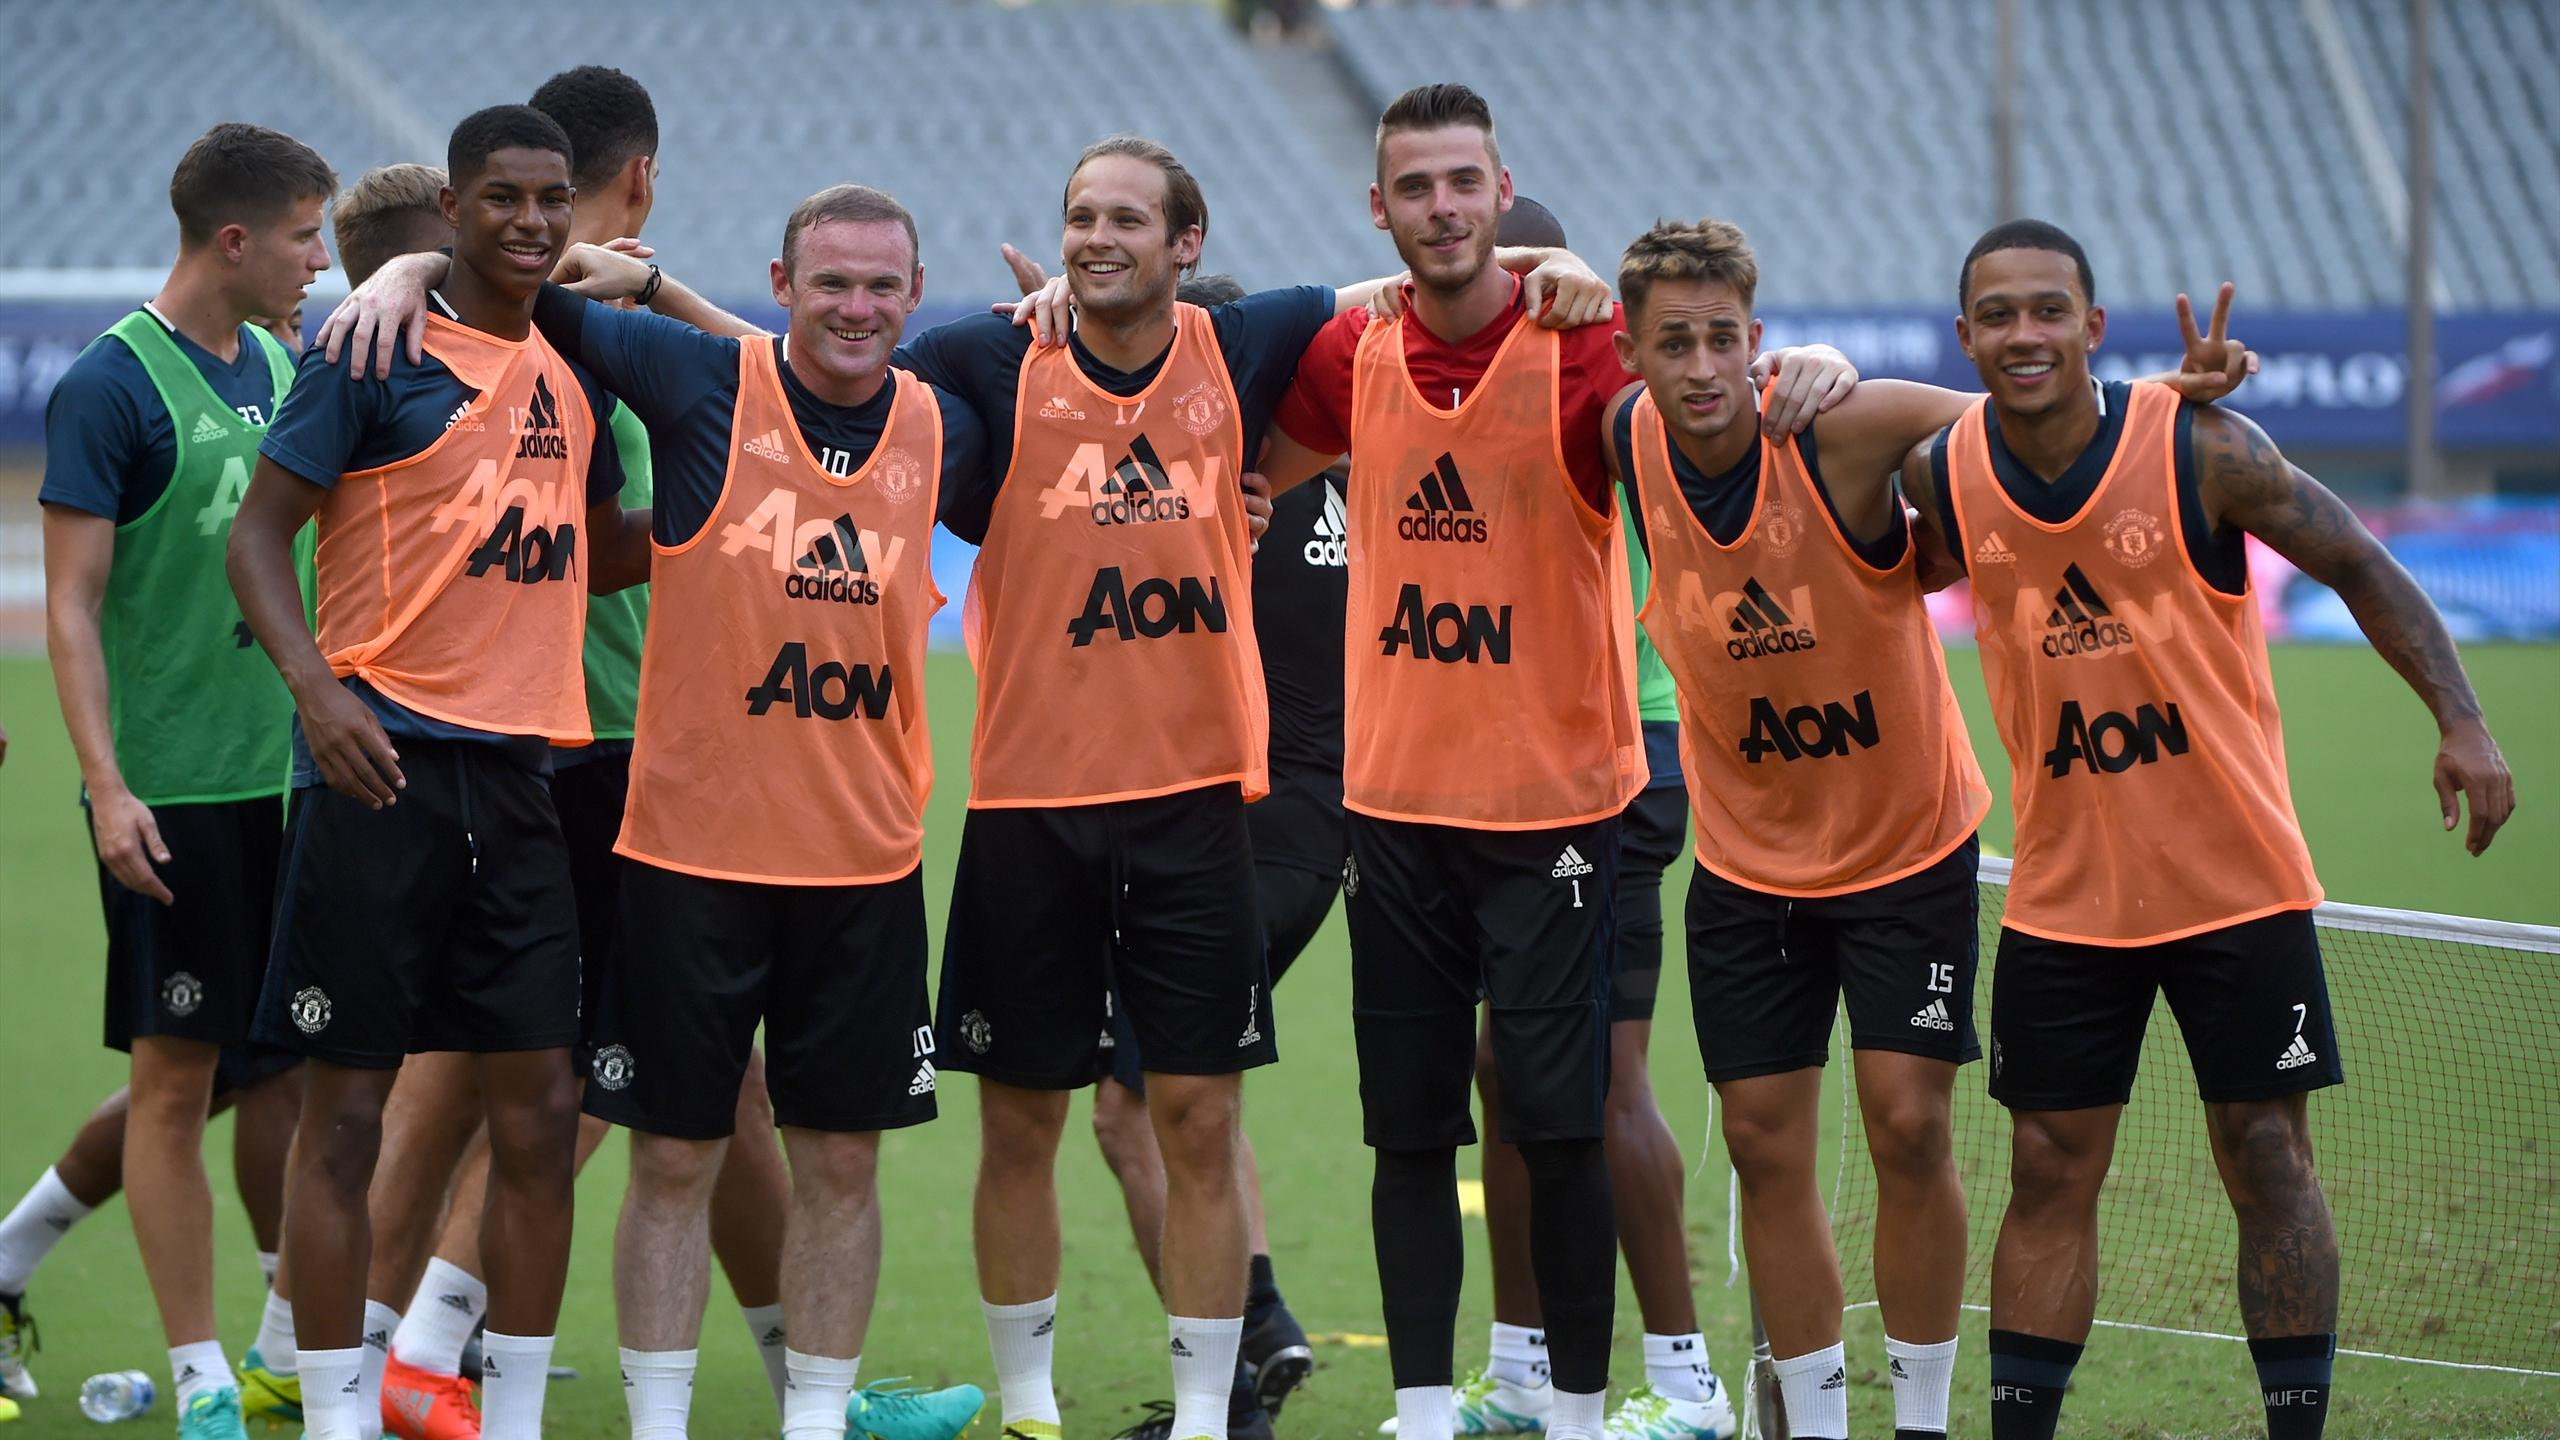 Manchester United's Wayne Rooney (front 2nd L) takes part in a training session with teammates ahead of the 2016 International Champions Cup football match between Manchester United and Dortmund in Shanghai